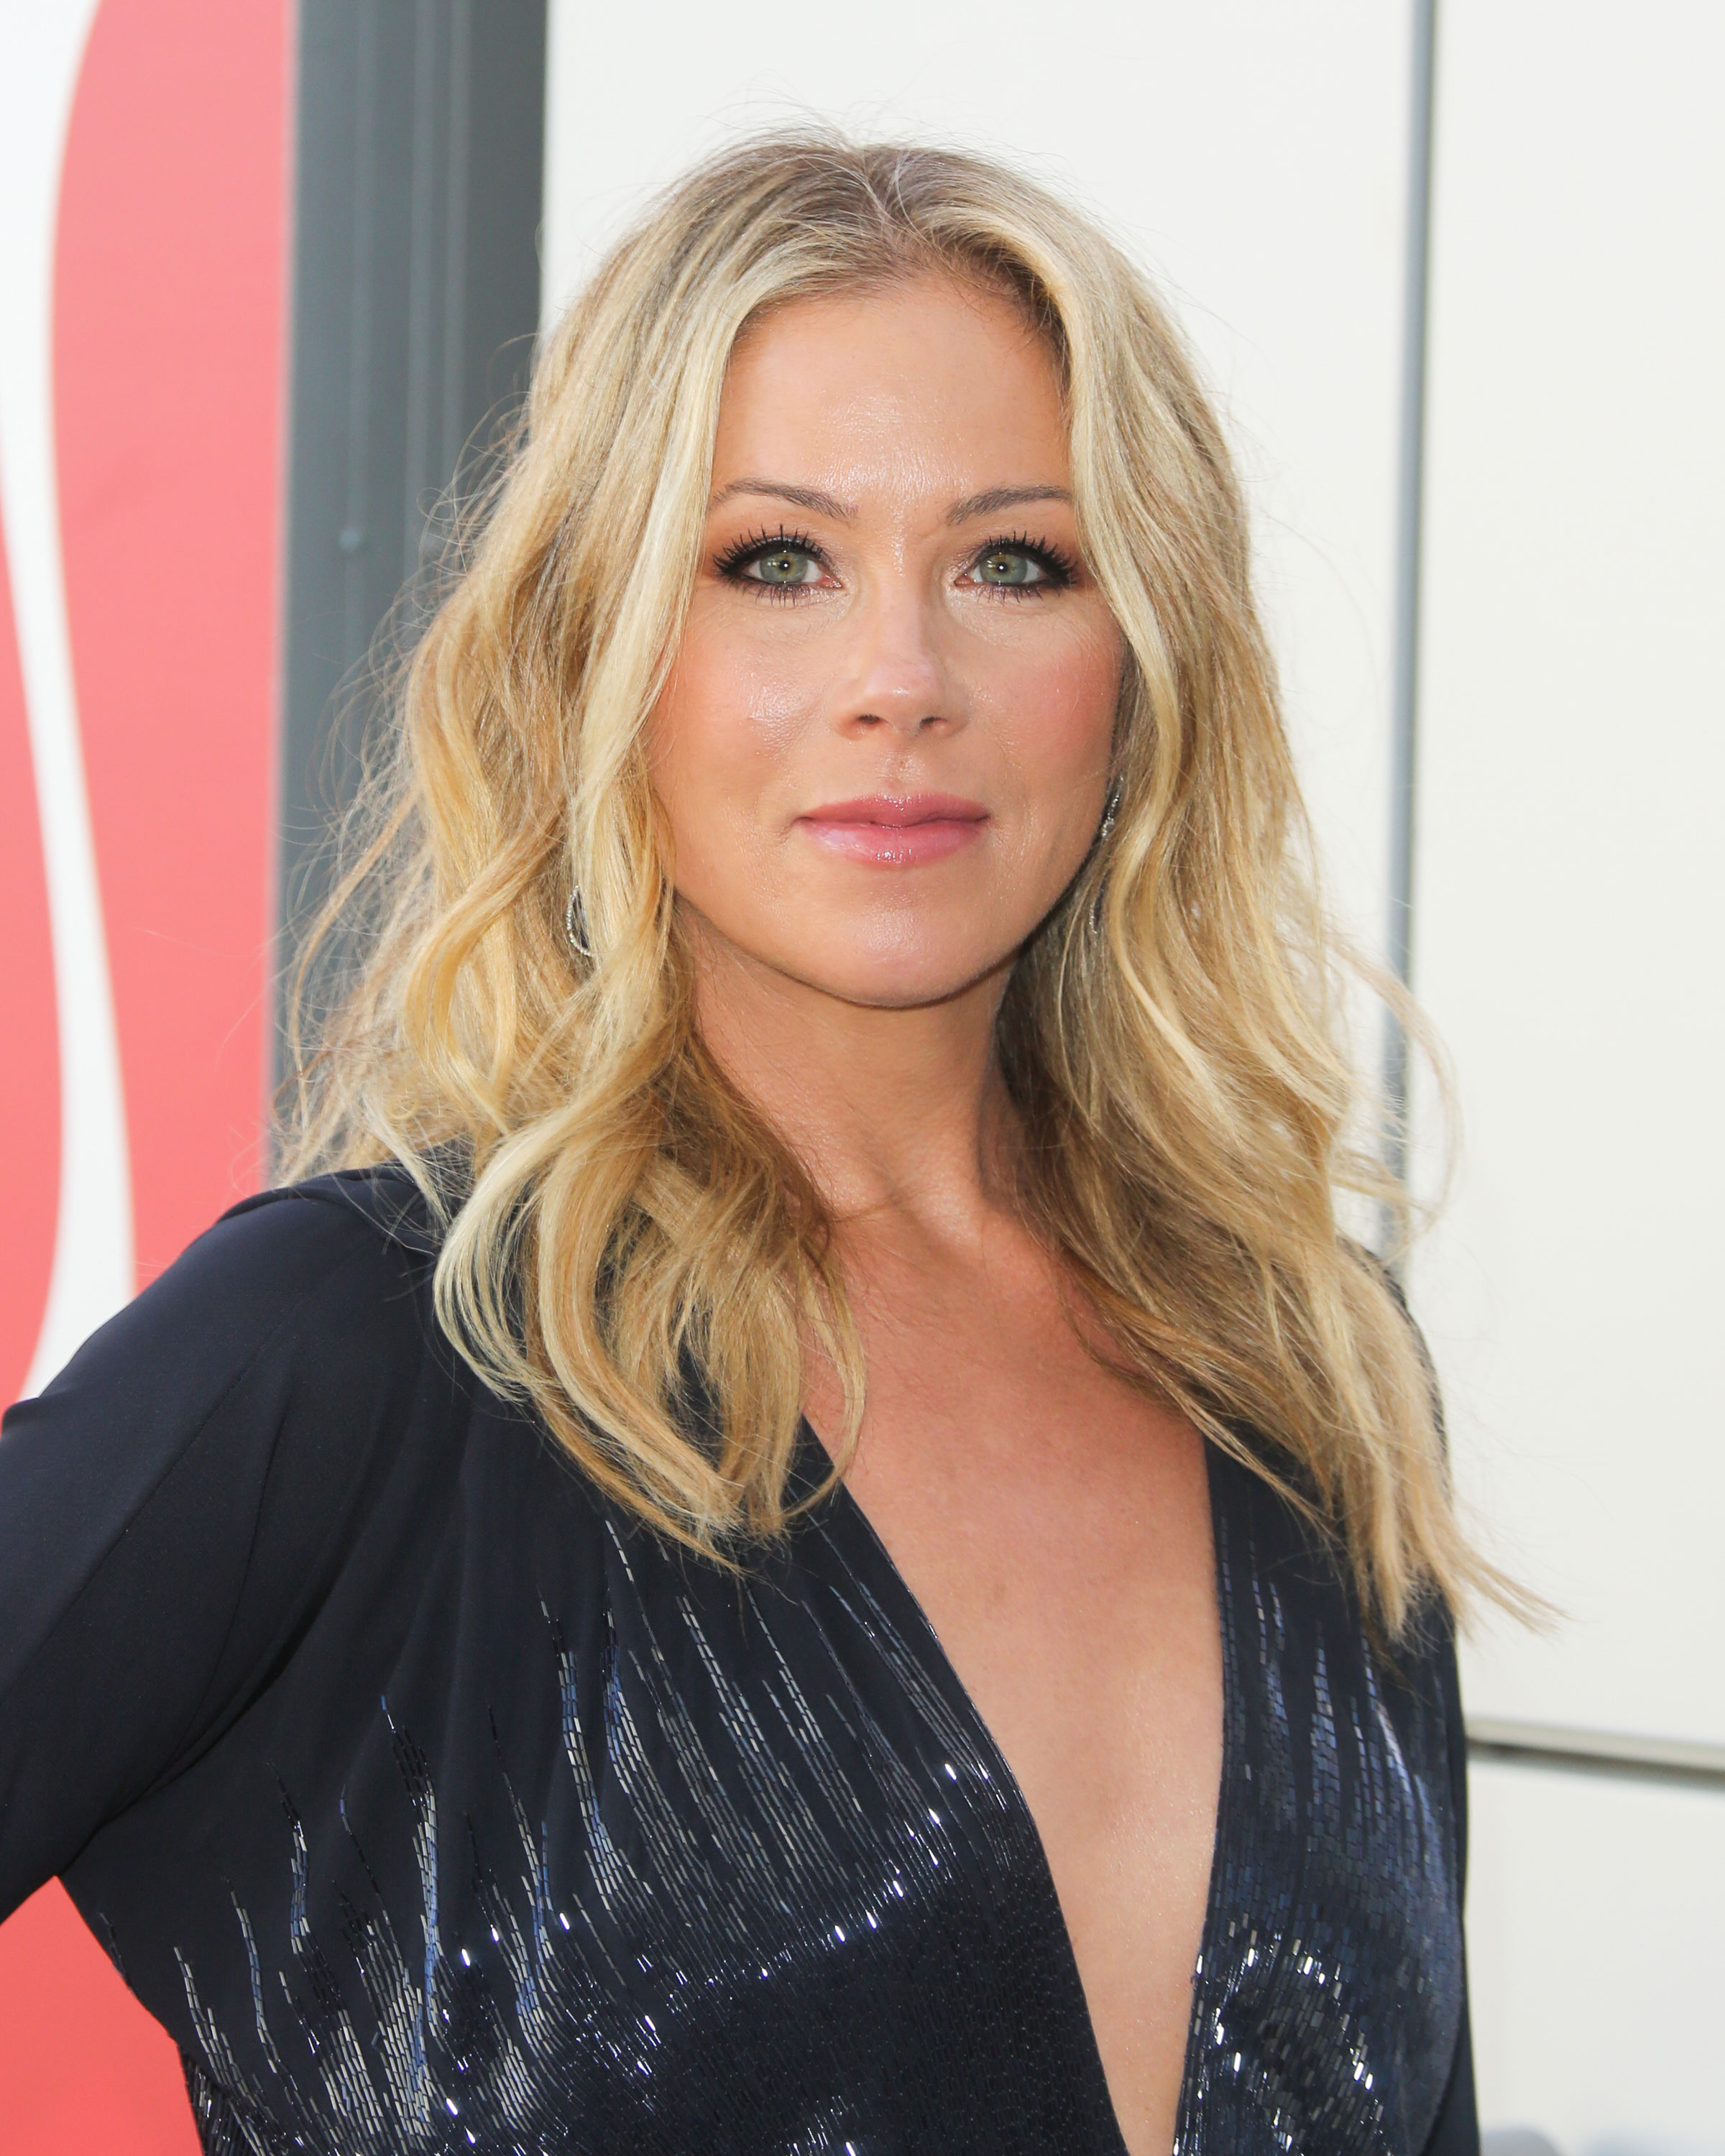 Christina Applegate 'Worried' About Daughter's Health After Undergoing Surgeries